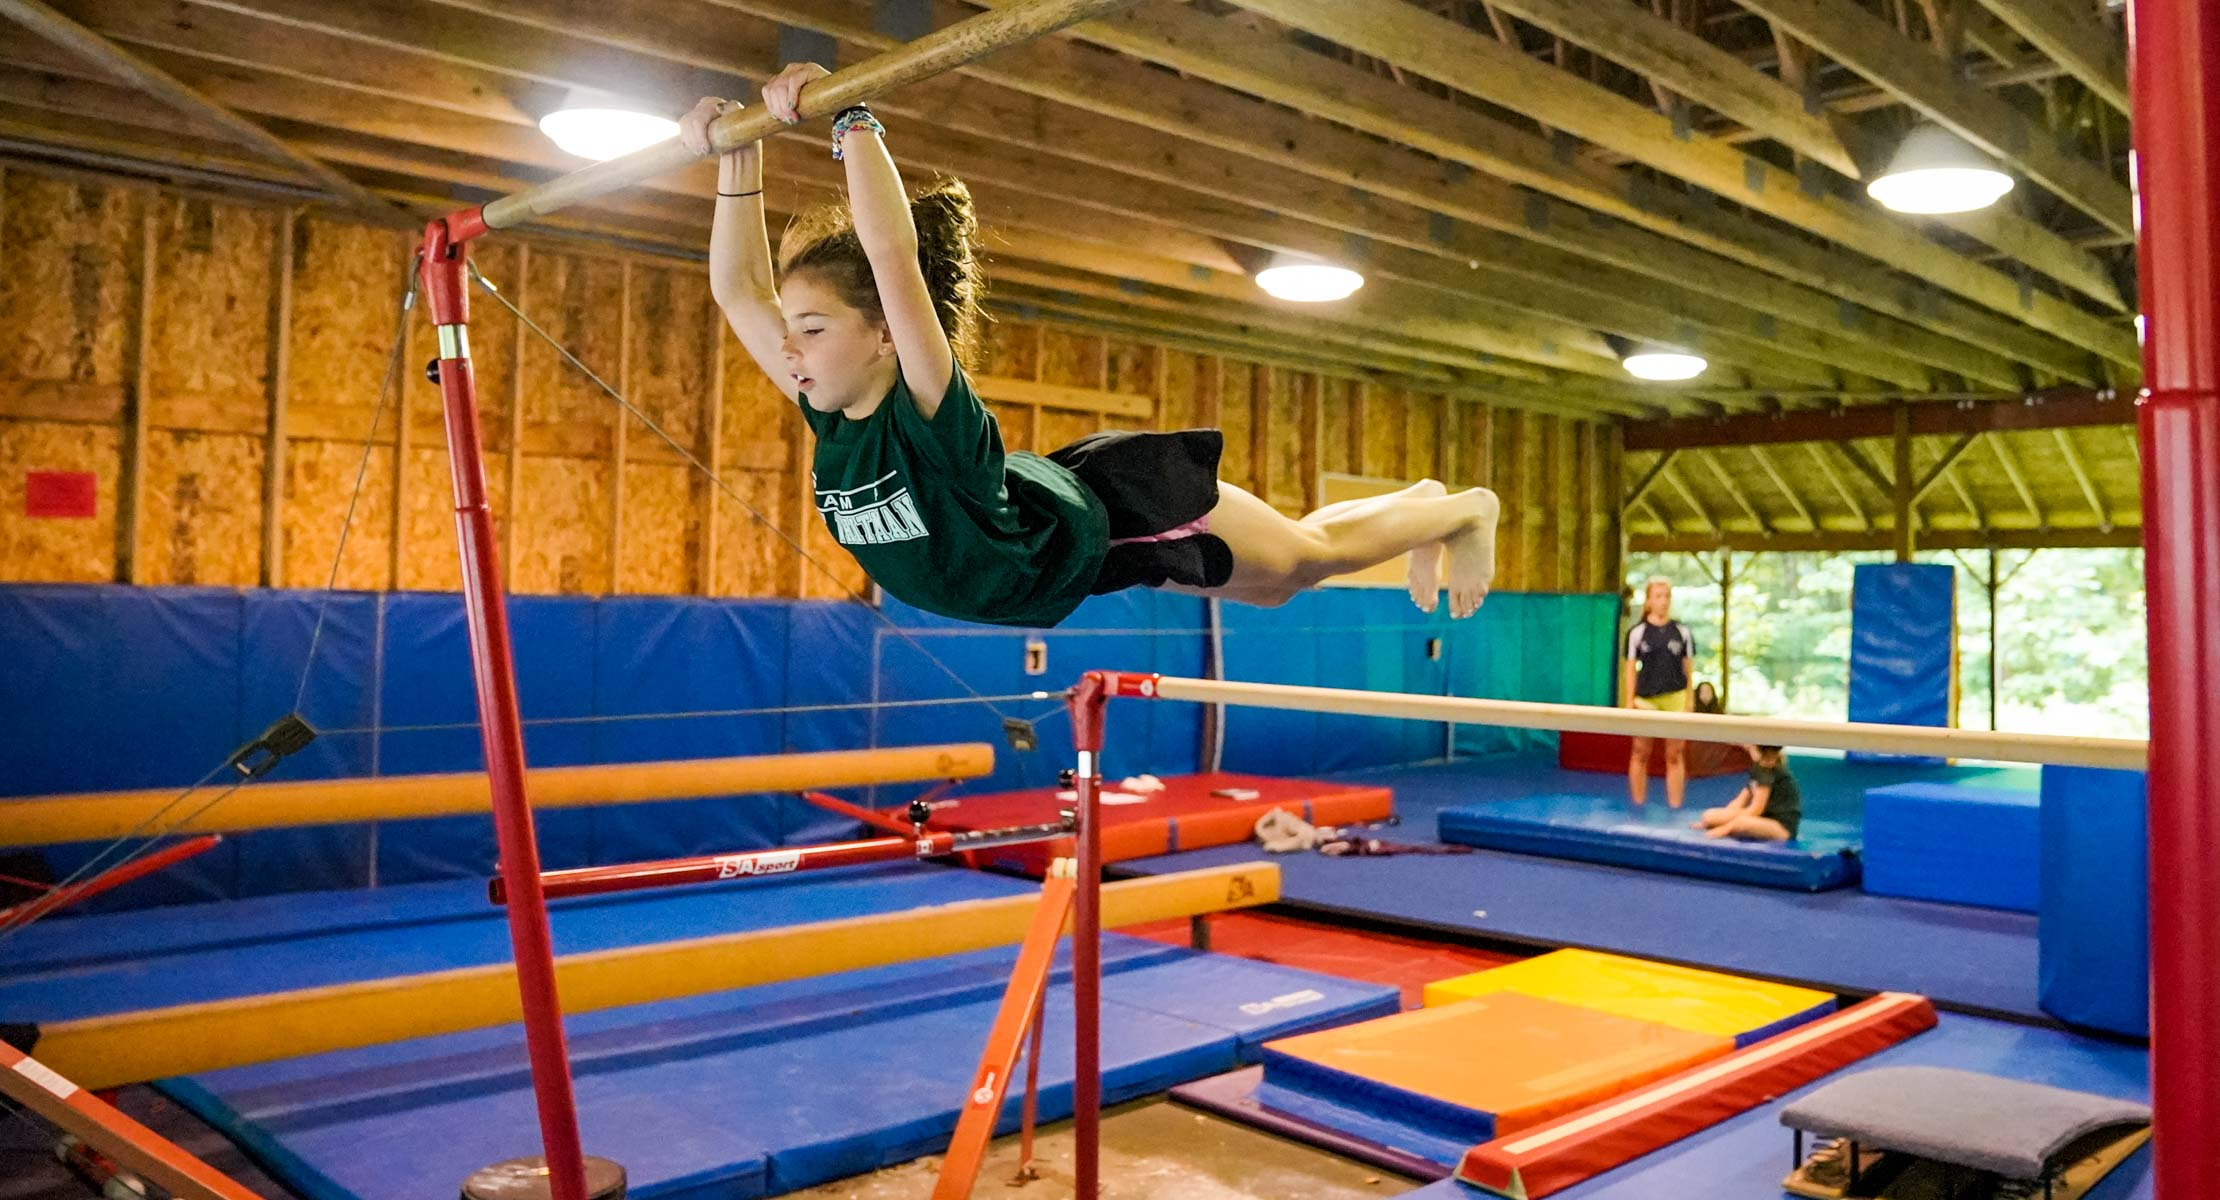 young girl swinging on the uneven bars